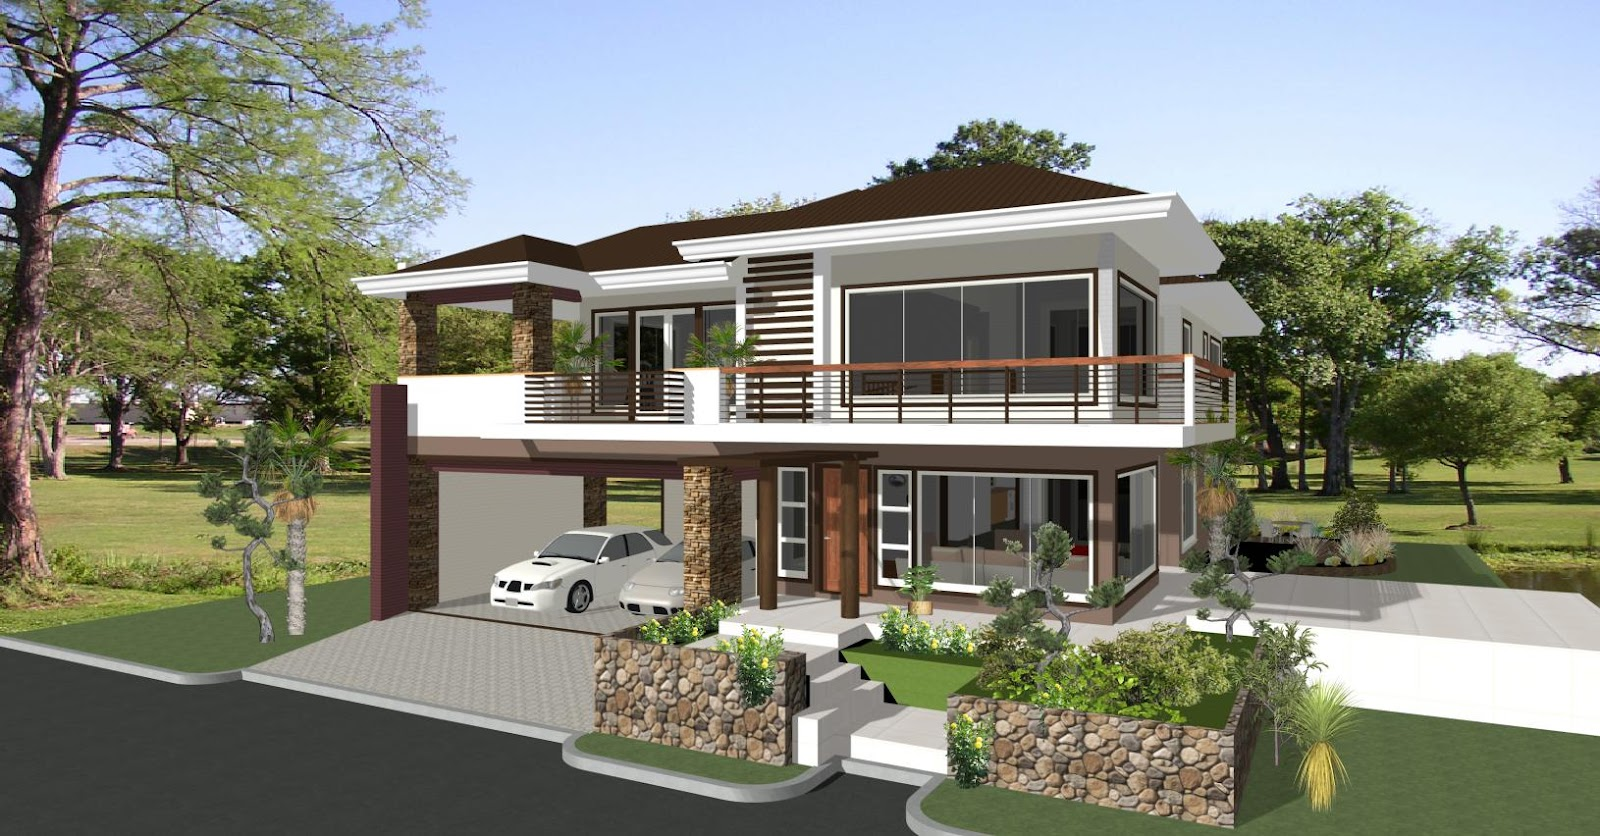 House designs in the philippines in iloilo by erecre group for New homes designs